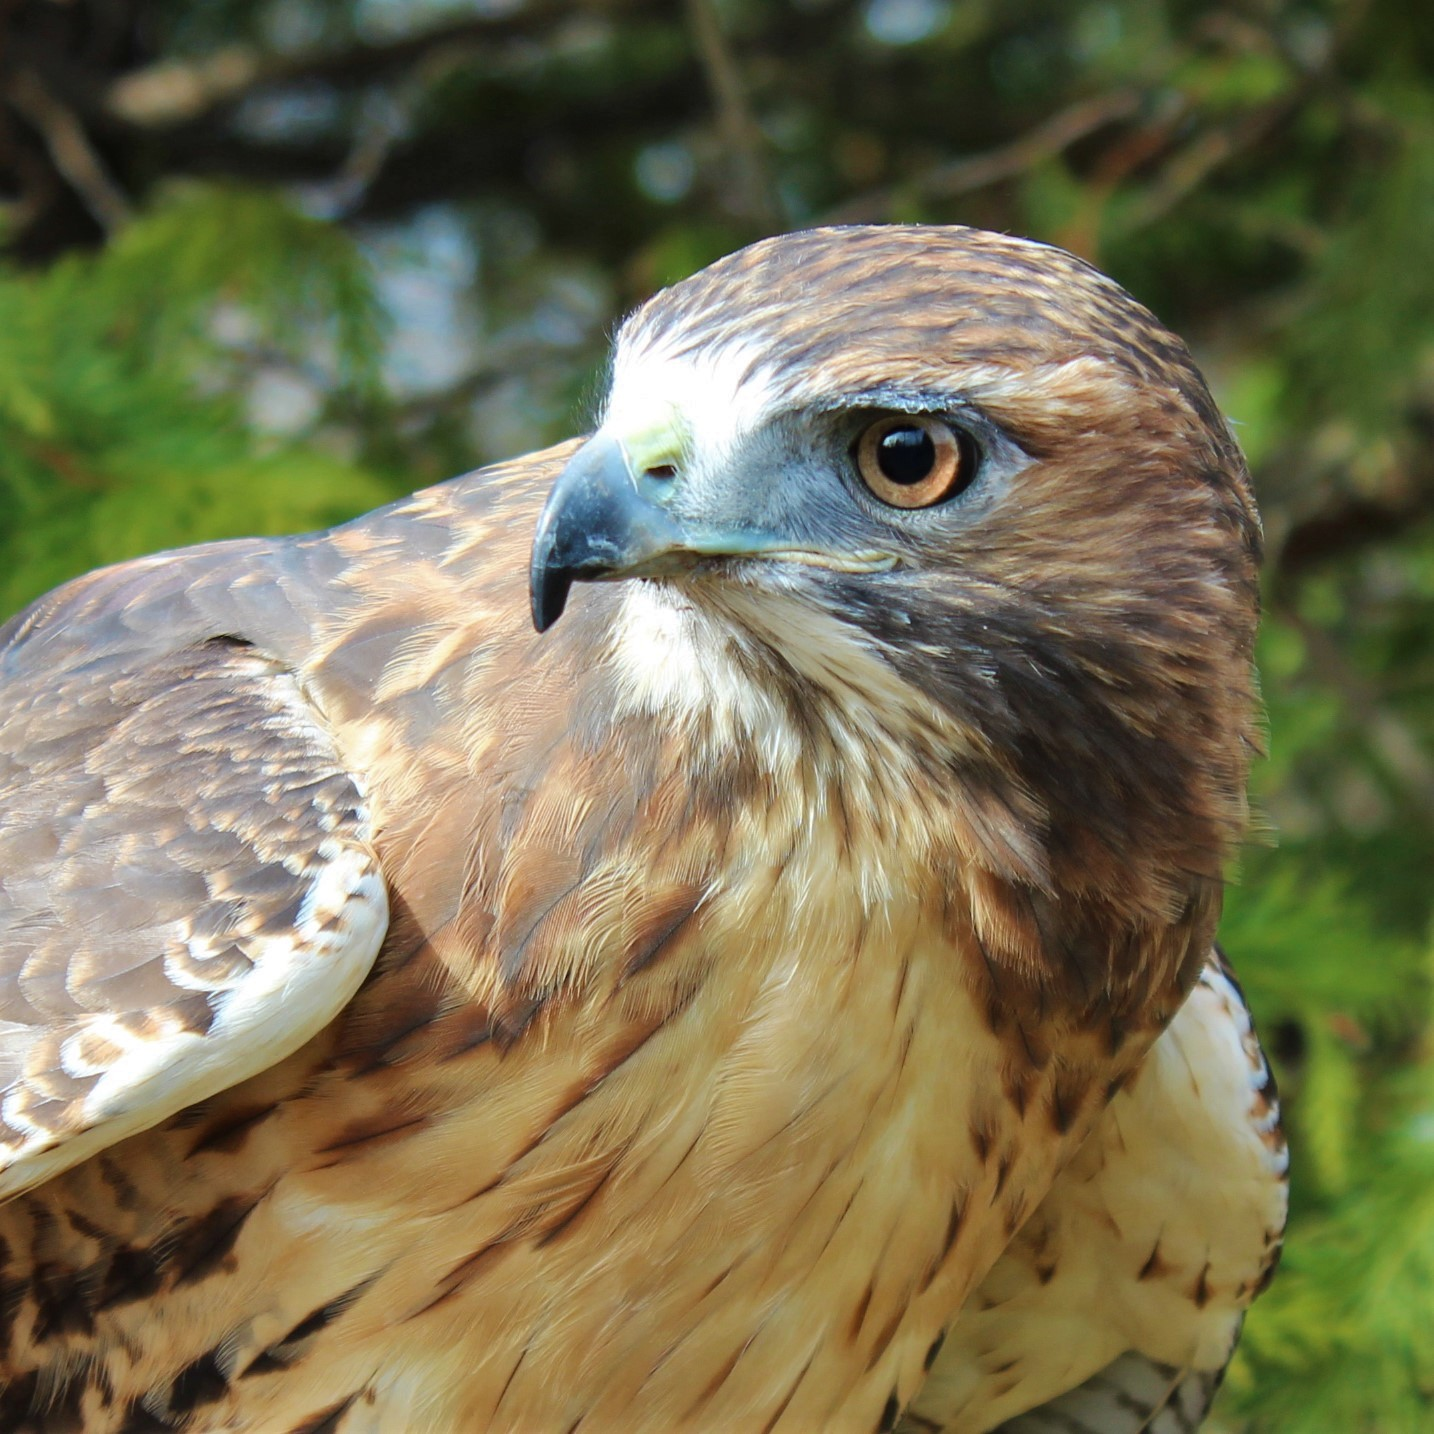 Scarlet, Red-Tailed Hawk